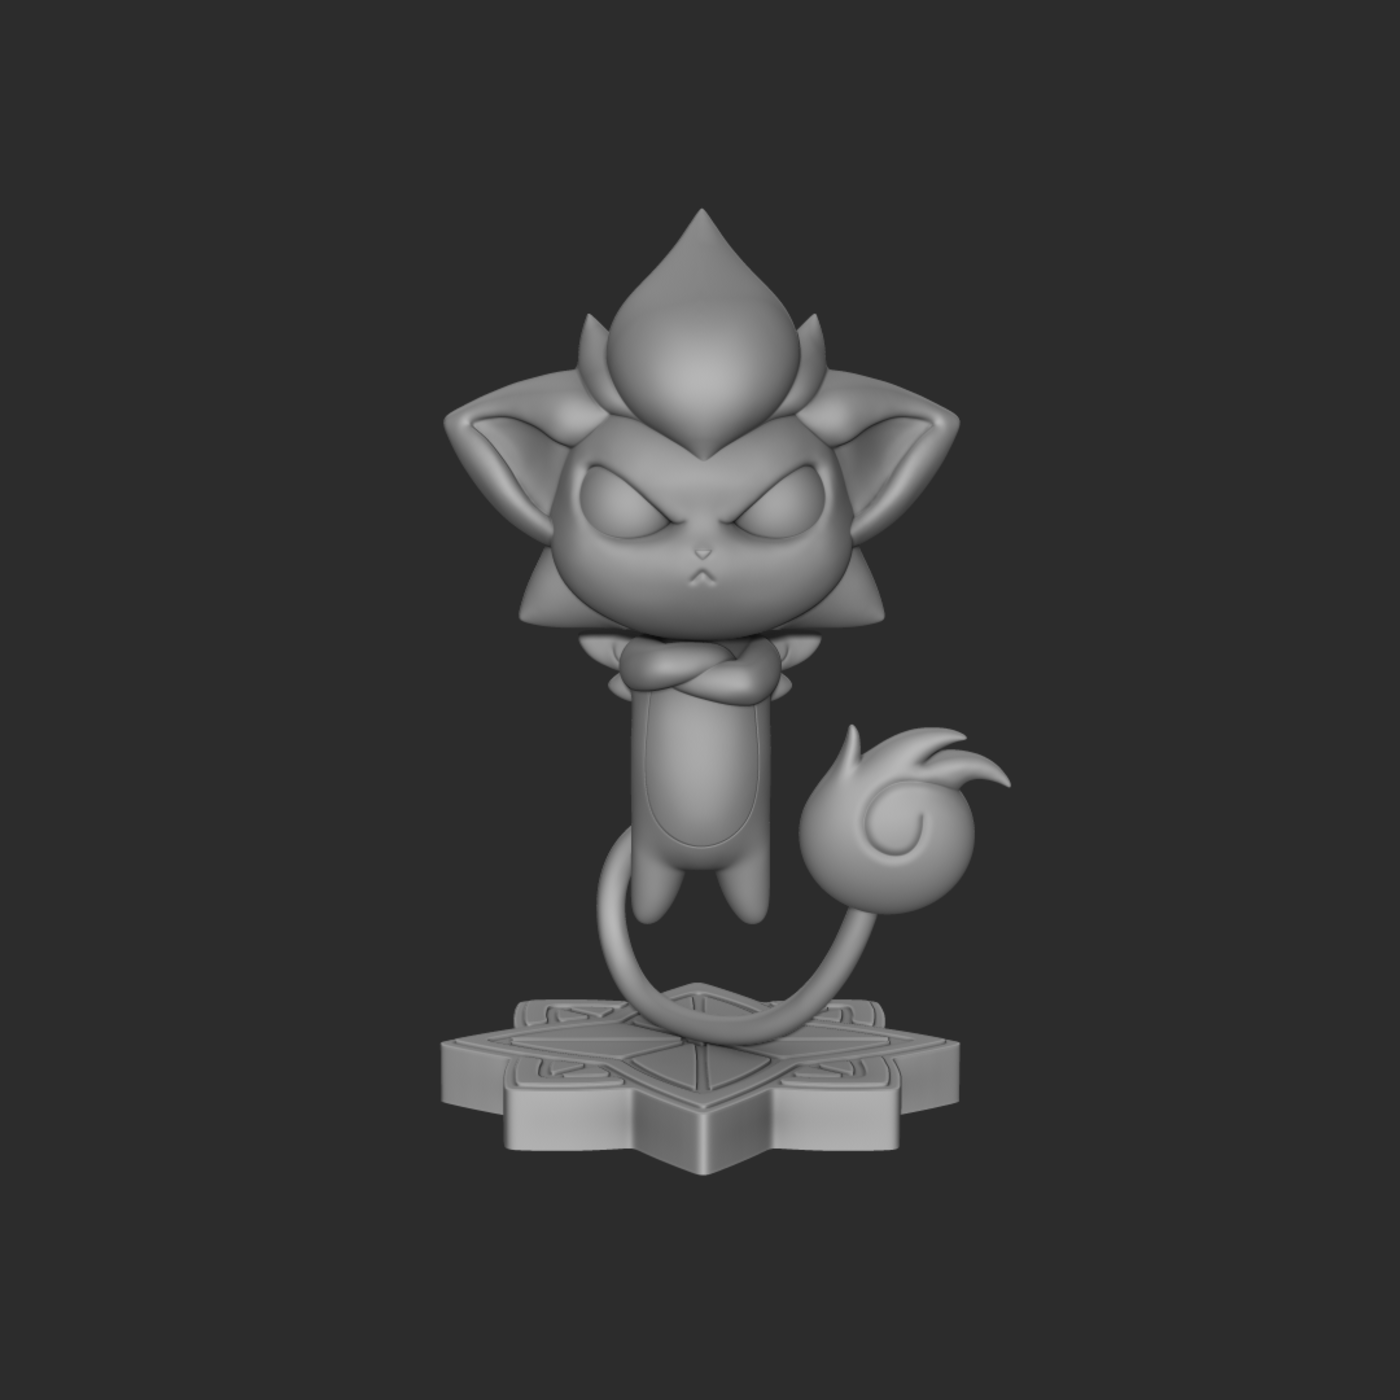 Shisa from League of Legends (Star Guardian Universe)